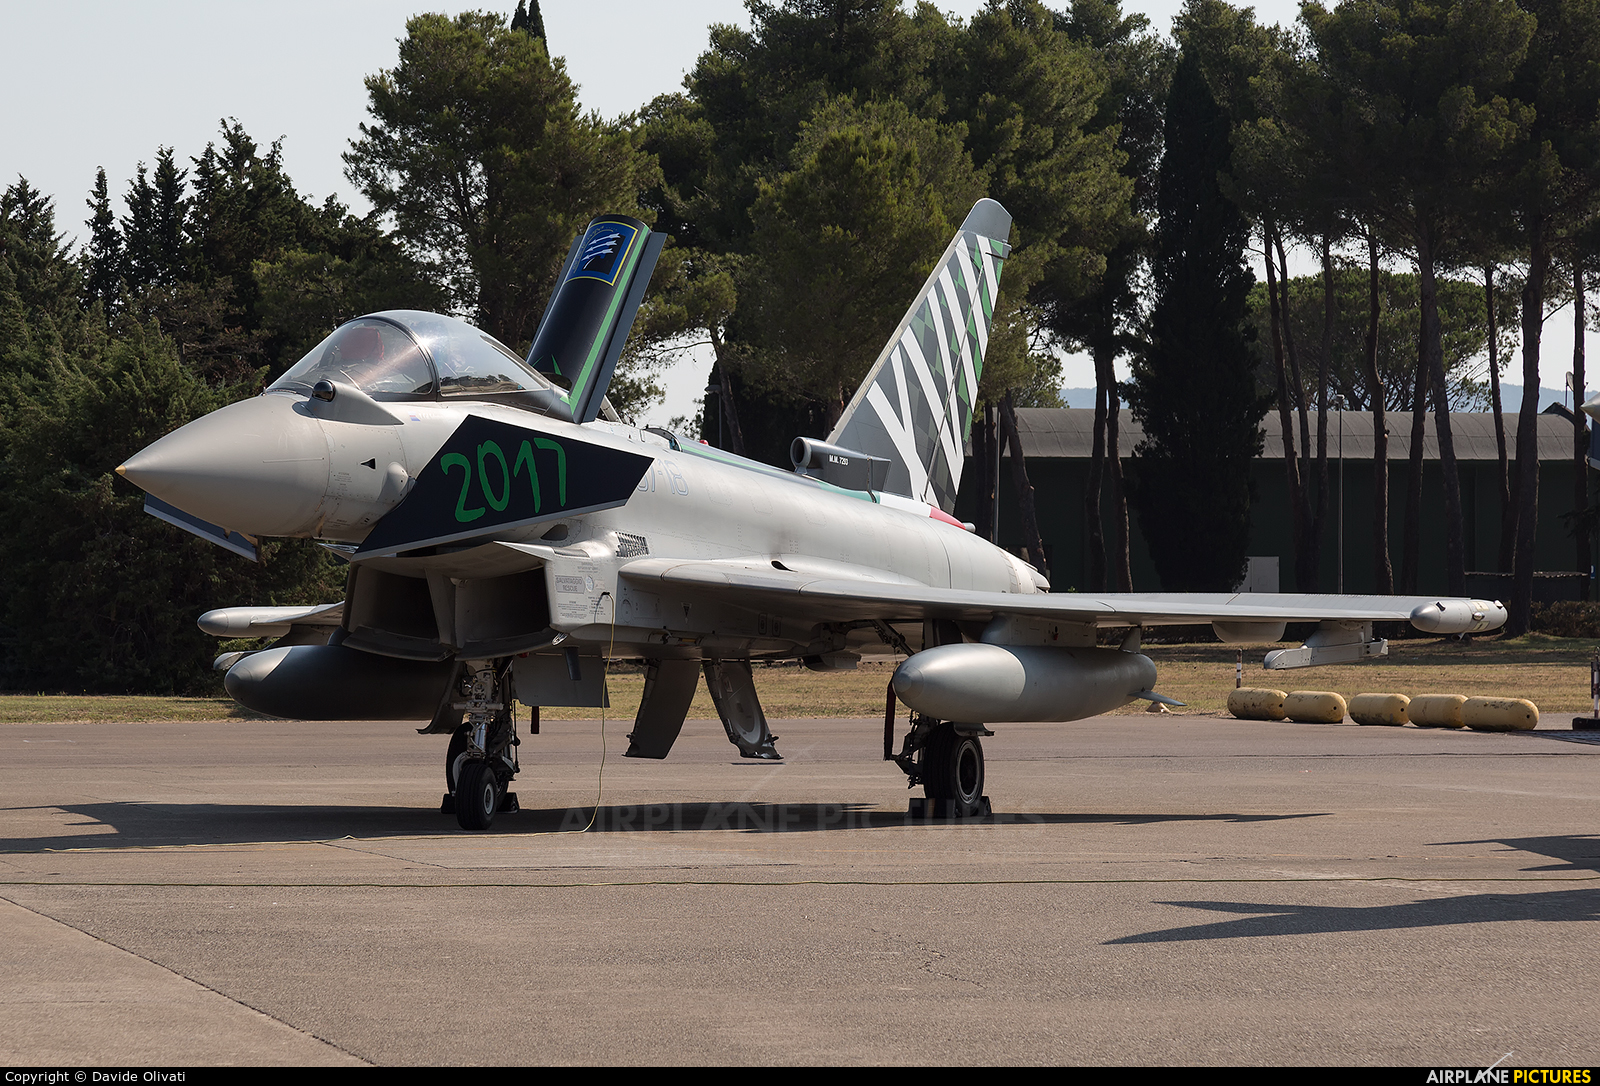 Italy - Air Force MM7293 aircraft at Grosseto - Corrado Baccarini